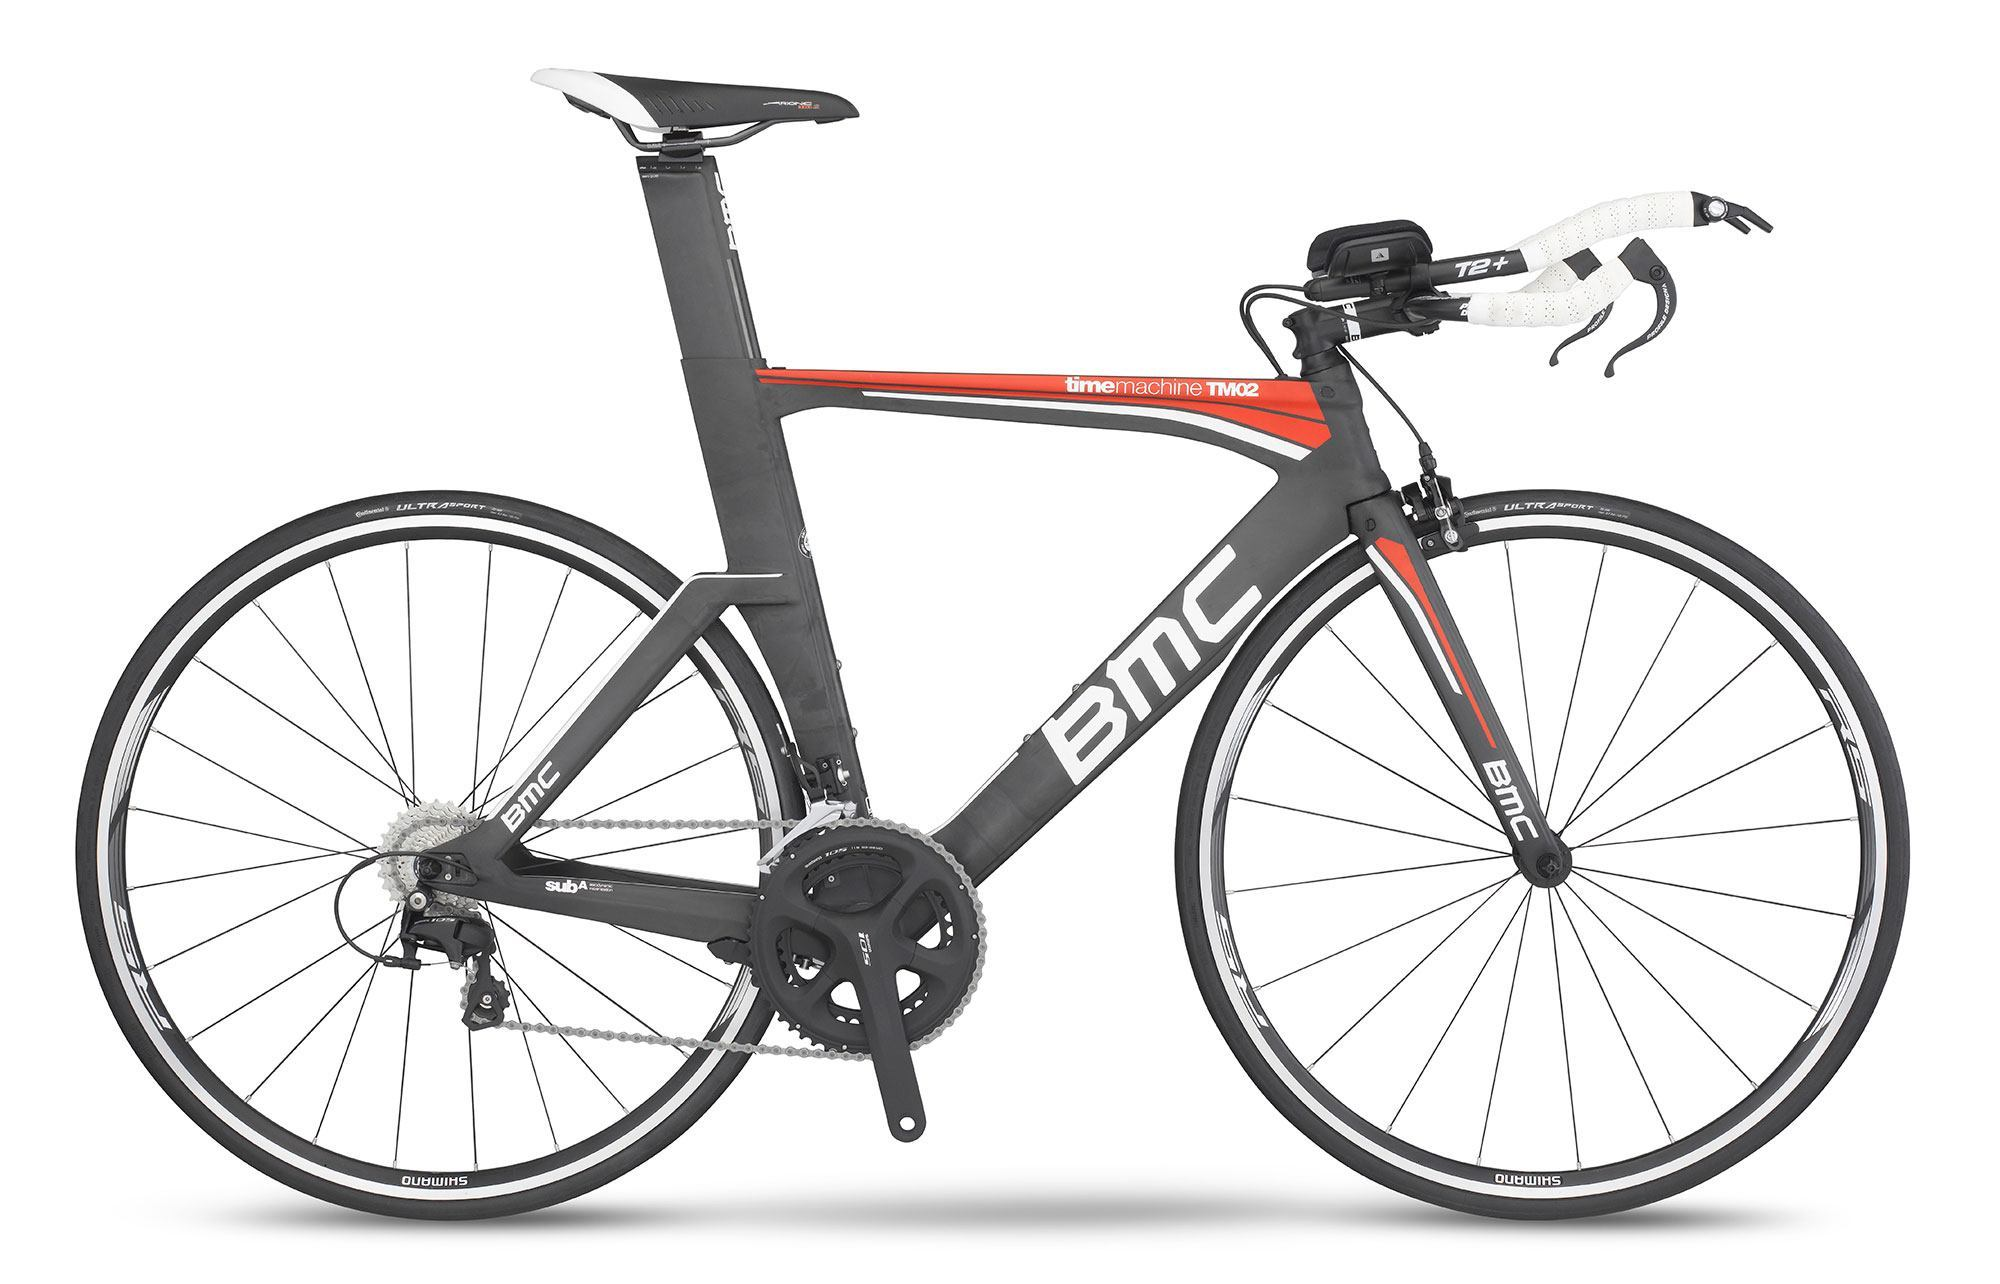 2016 BMC Timemachine TM02 105 Bike  218a57f9d